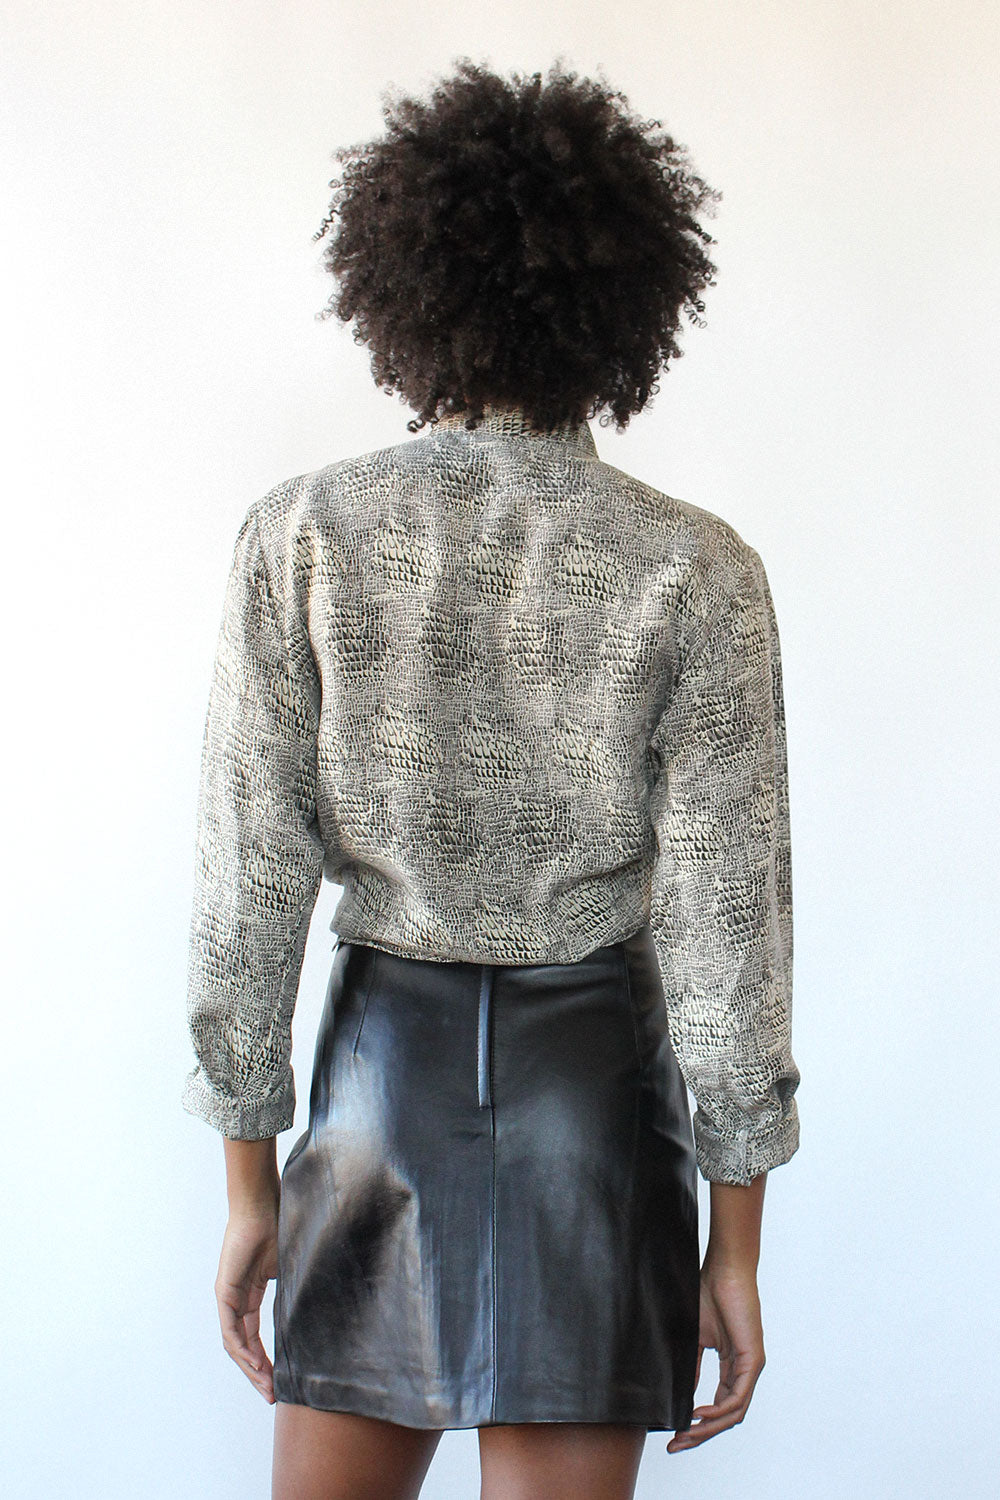 Muted Snakeskin Silk Blouse M/L